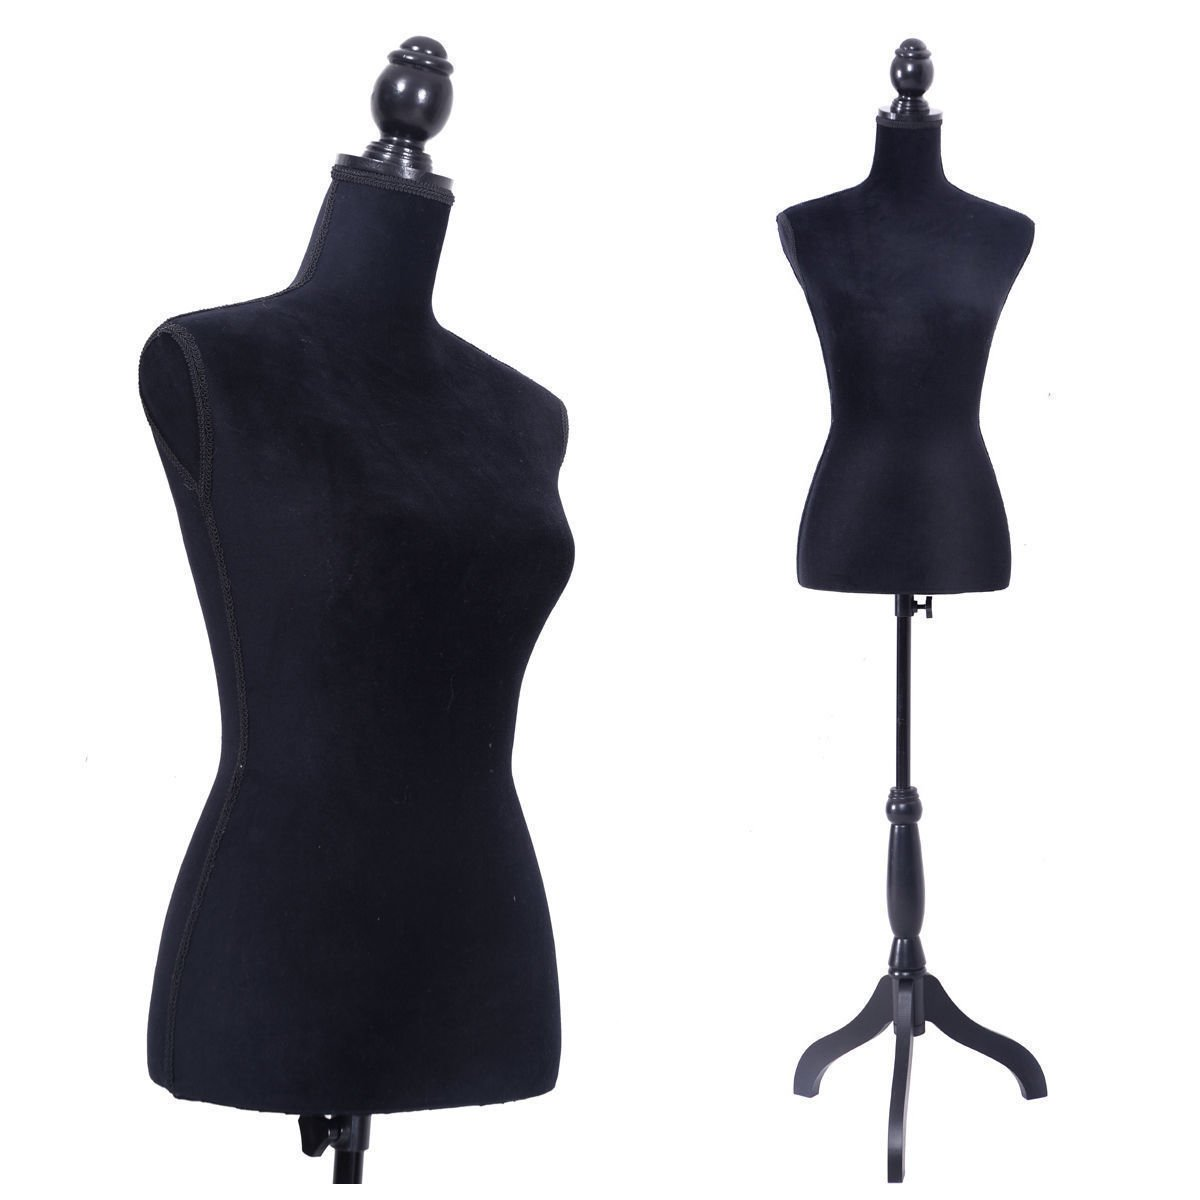 LAZYMOON Black Female Mannequin Torso Dress Form Clothing Display w/ Black Tripod Stand